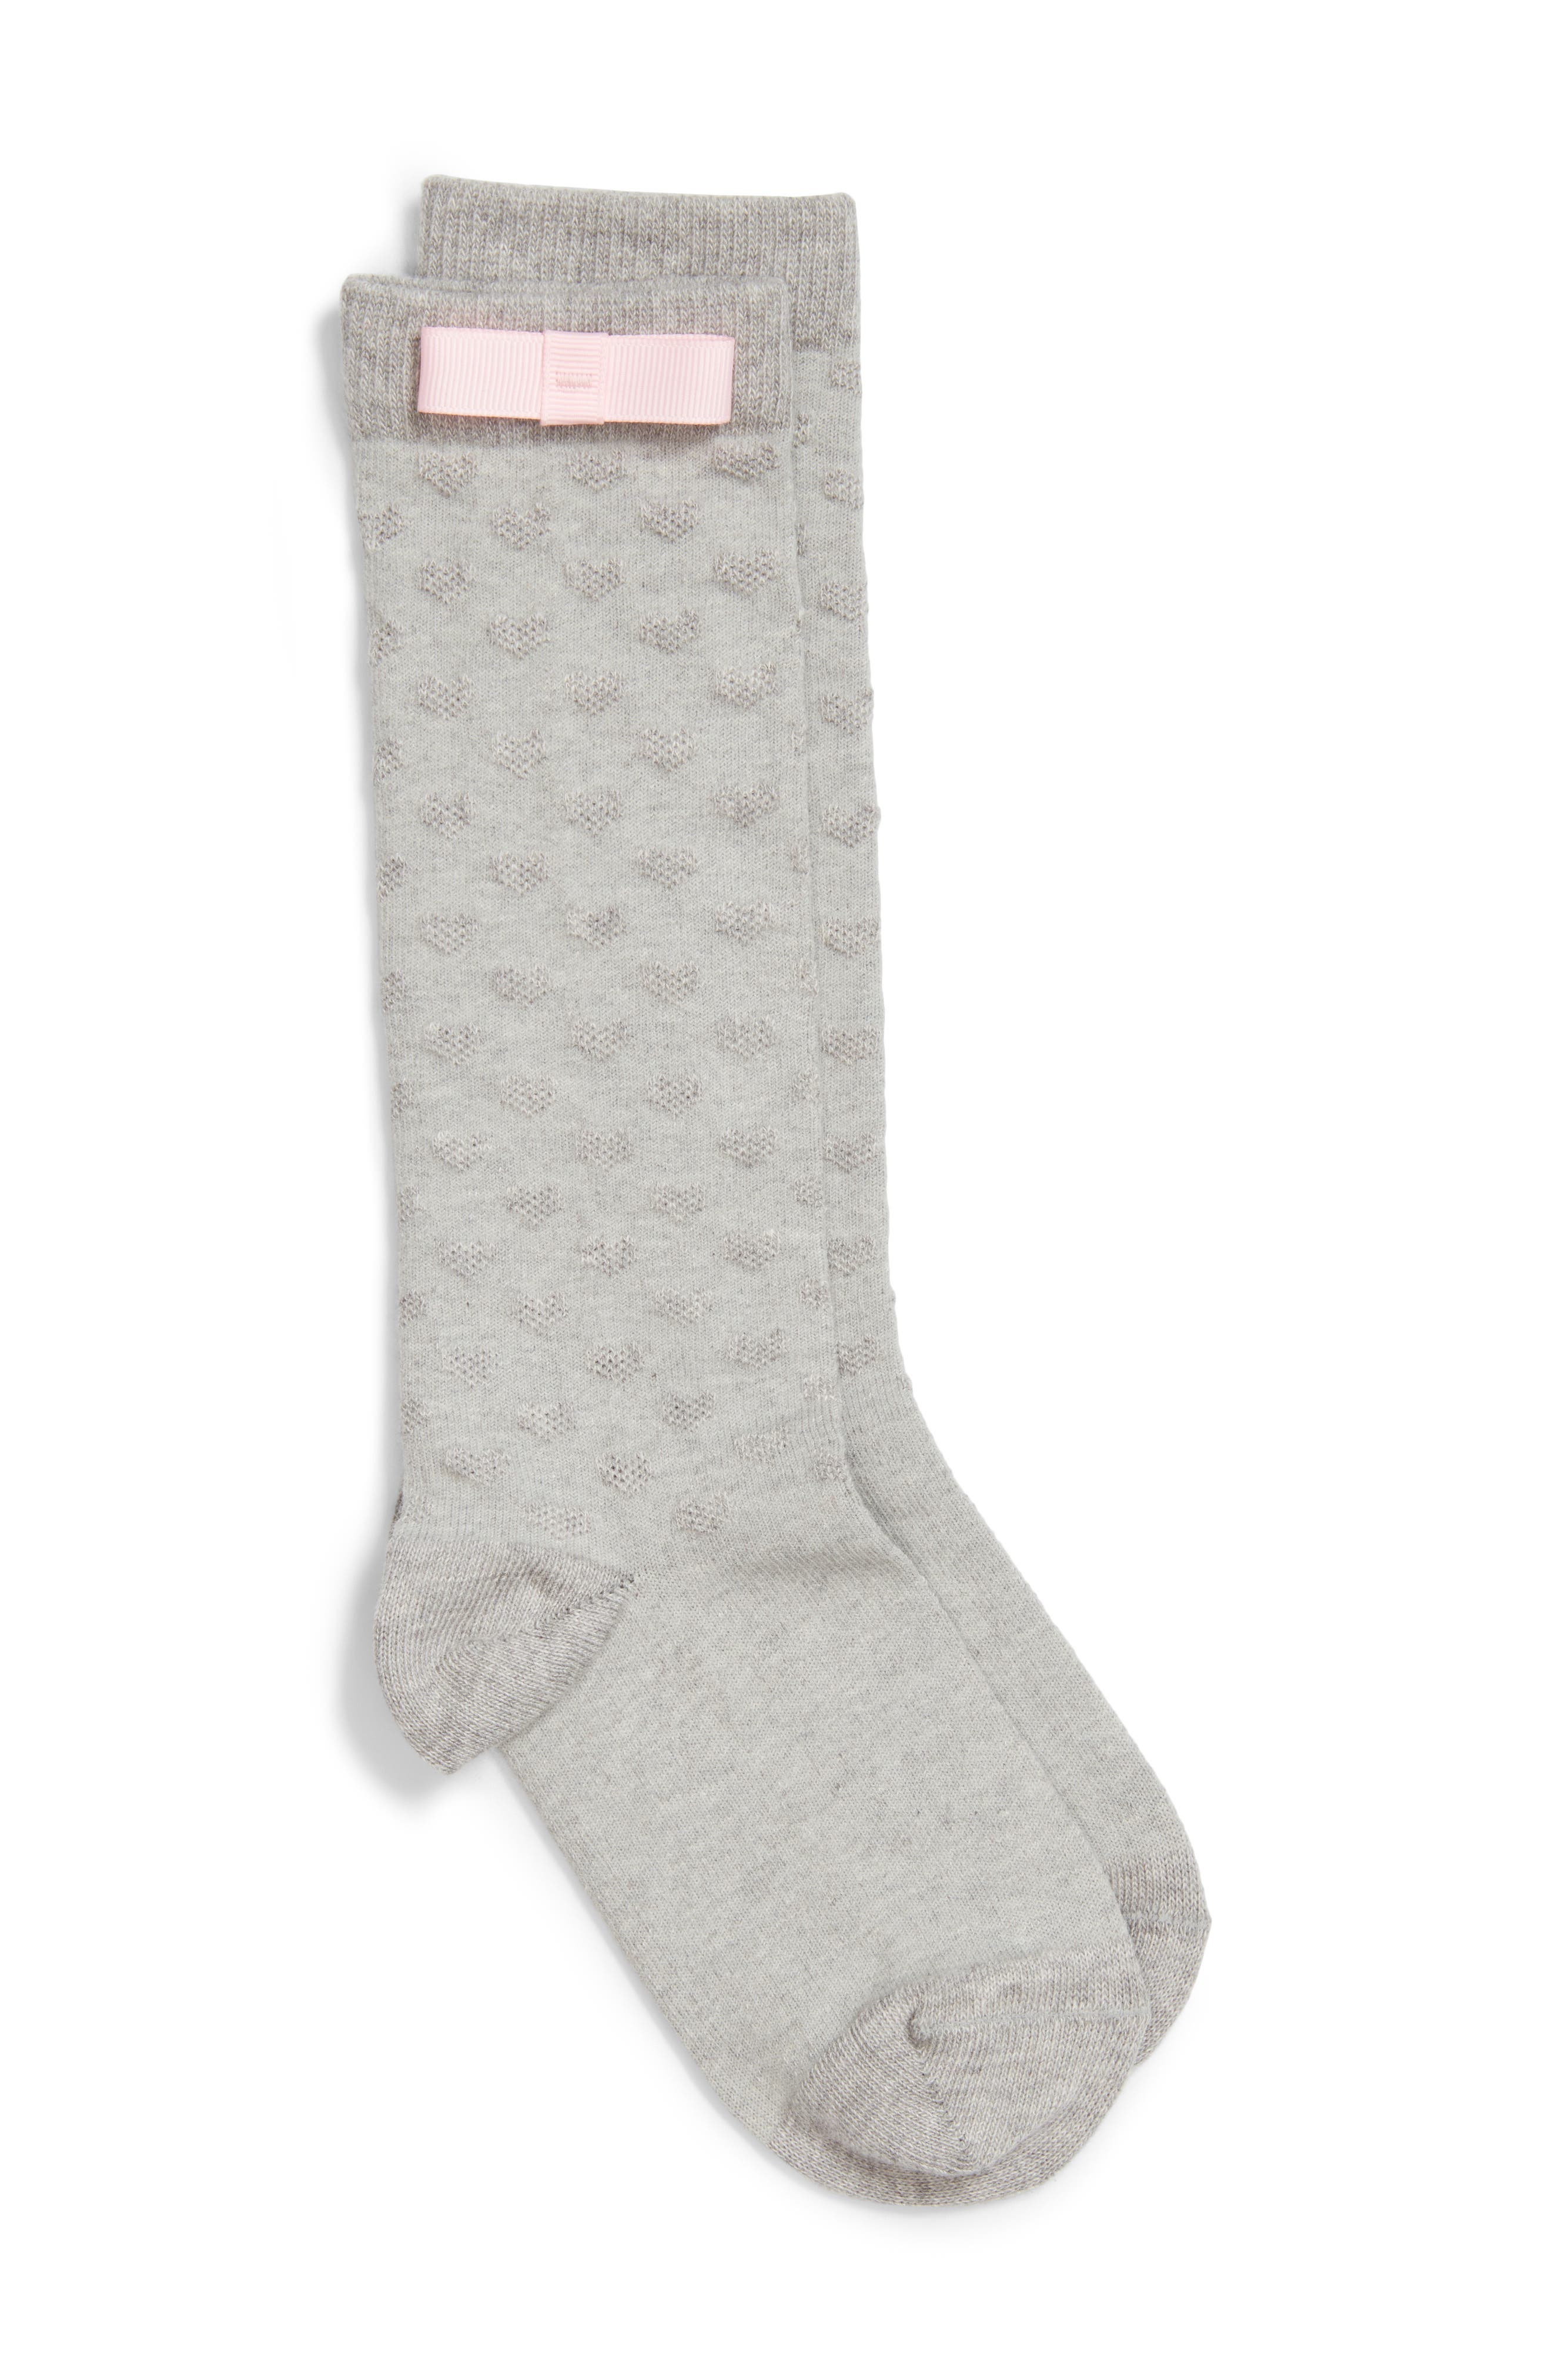 Ruby & Bloom Pointelle Knee High Socks (Toddler, Little Kid & Big Kid)